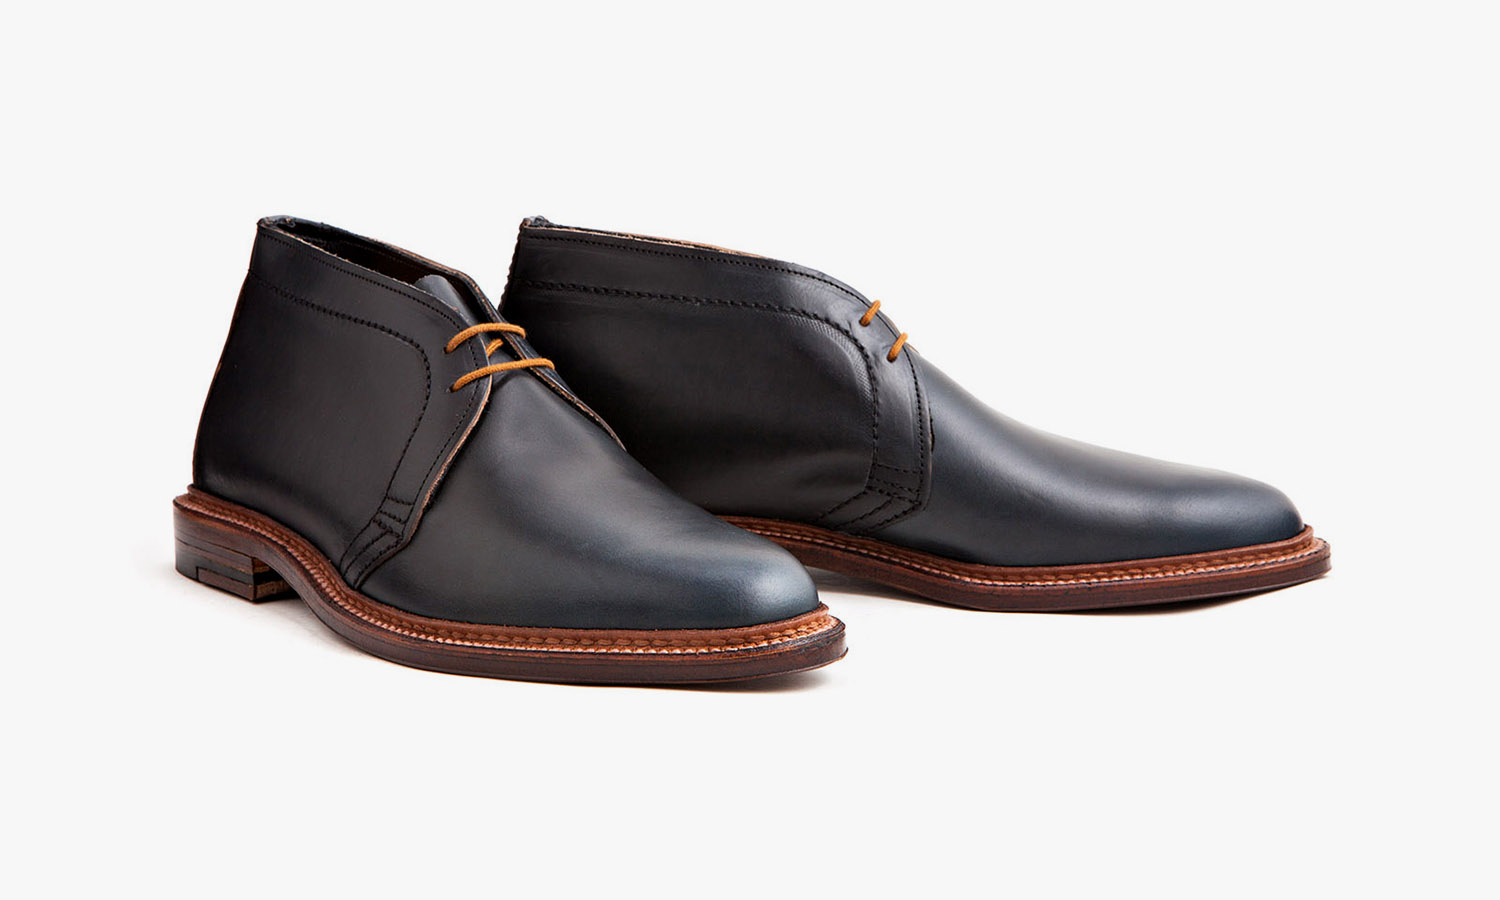 Alden-Leffot-Navy-Chukka-Featured-0